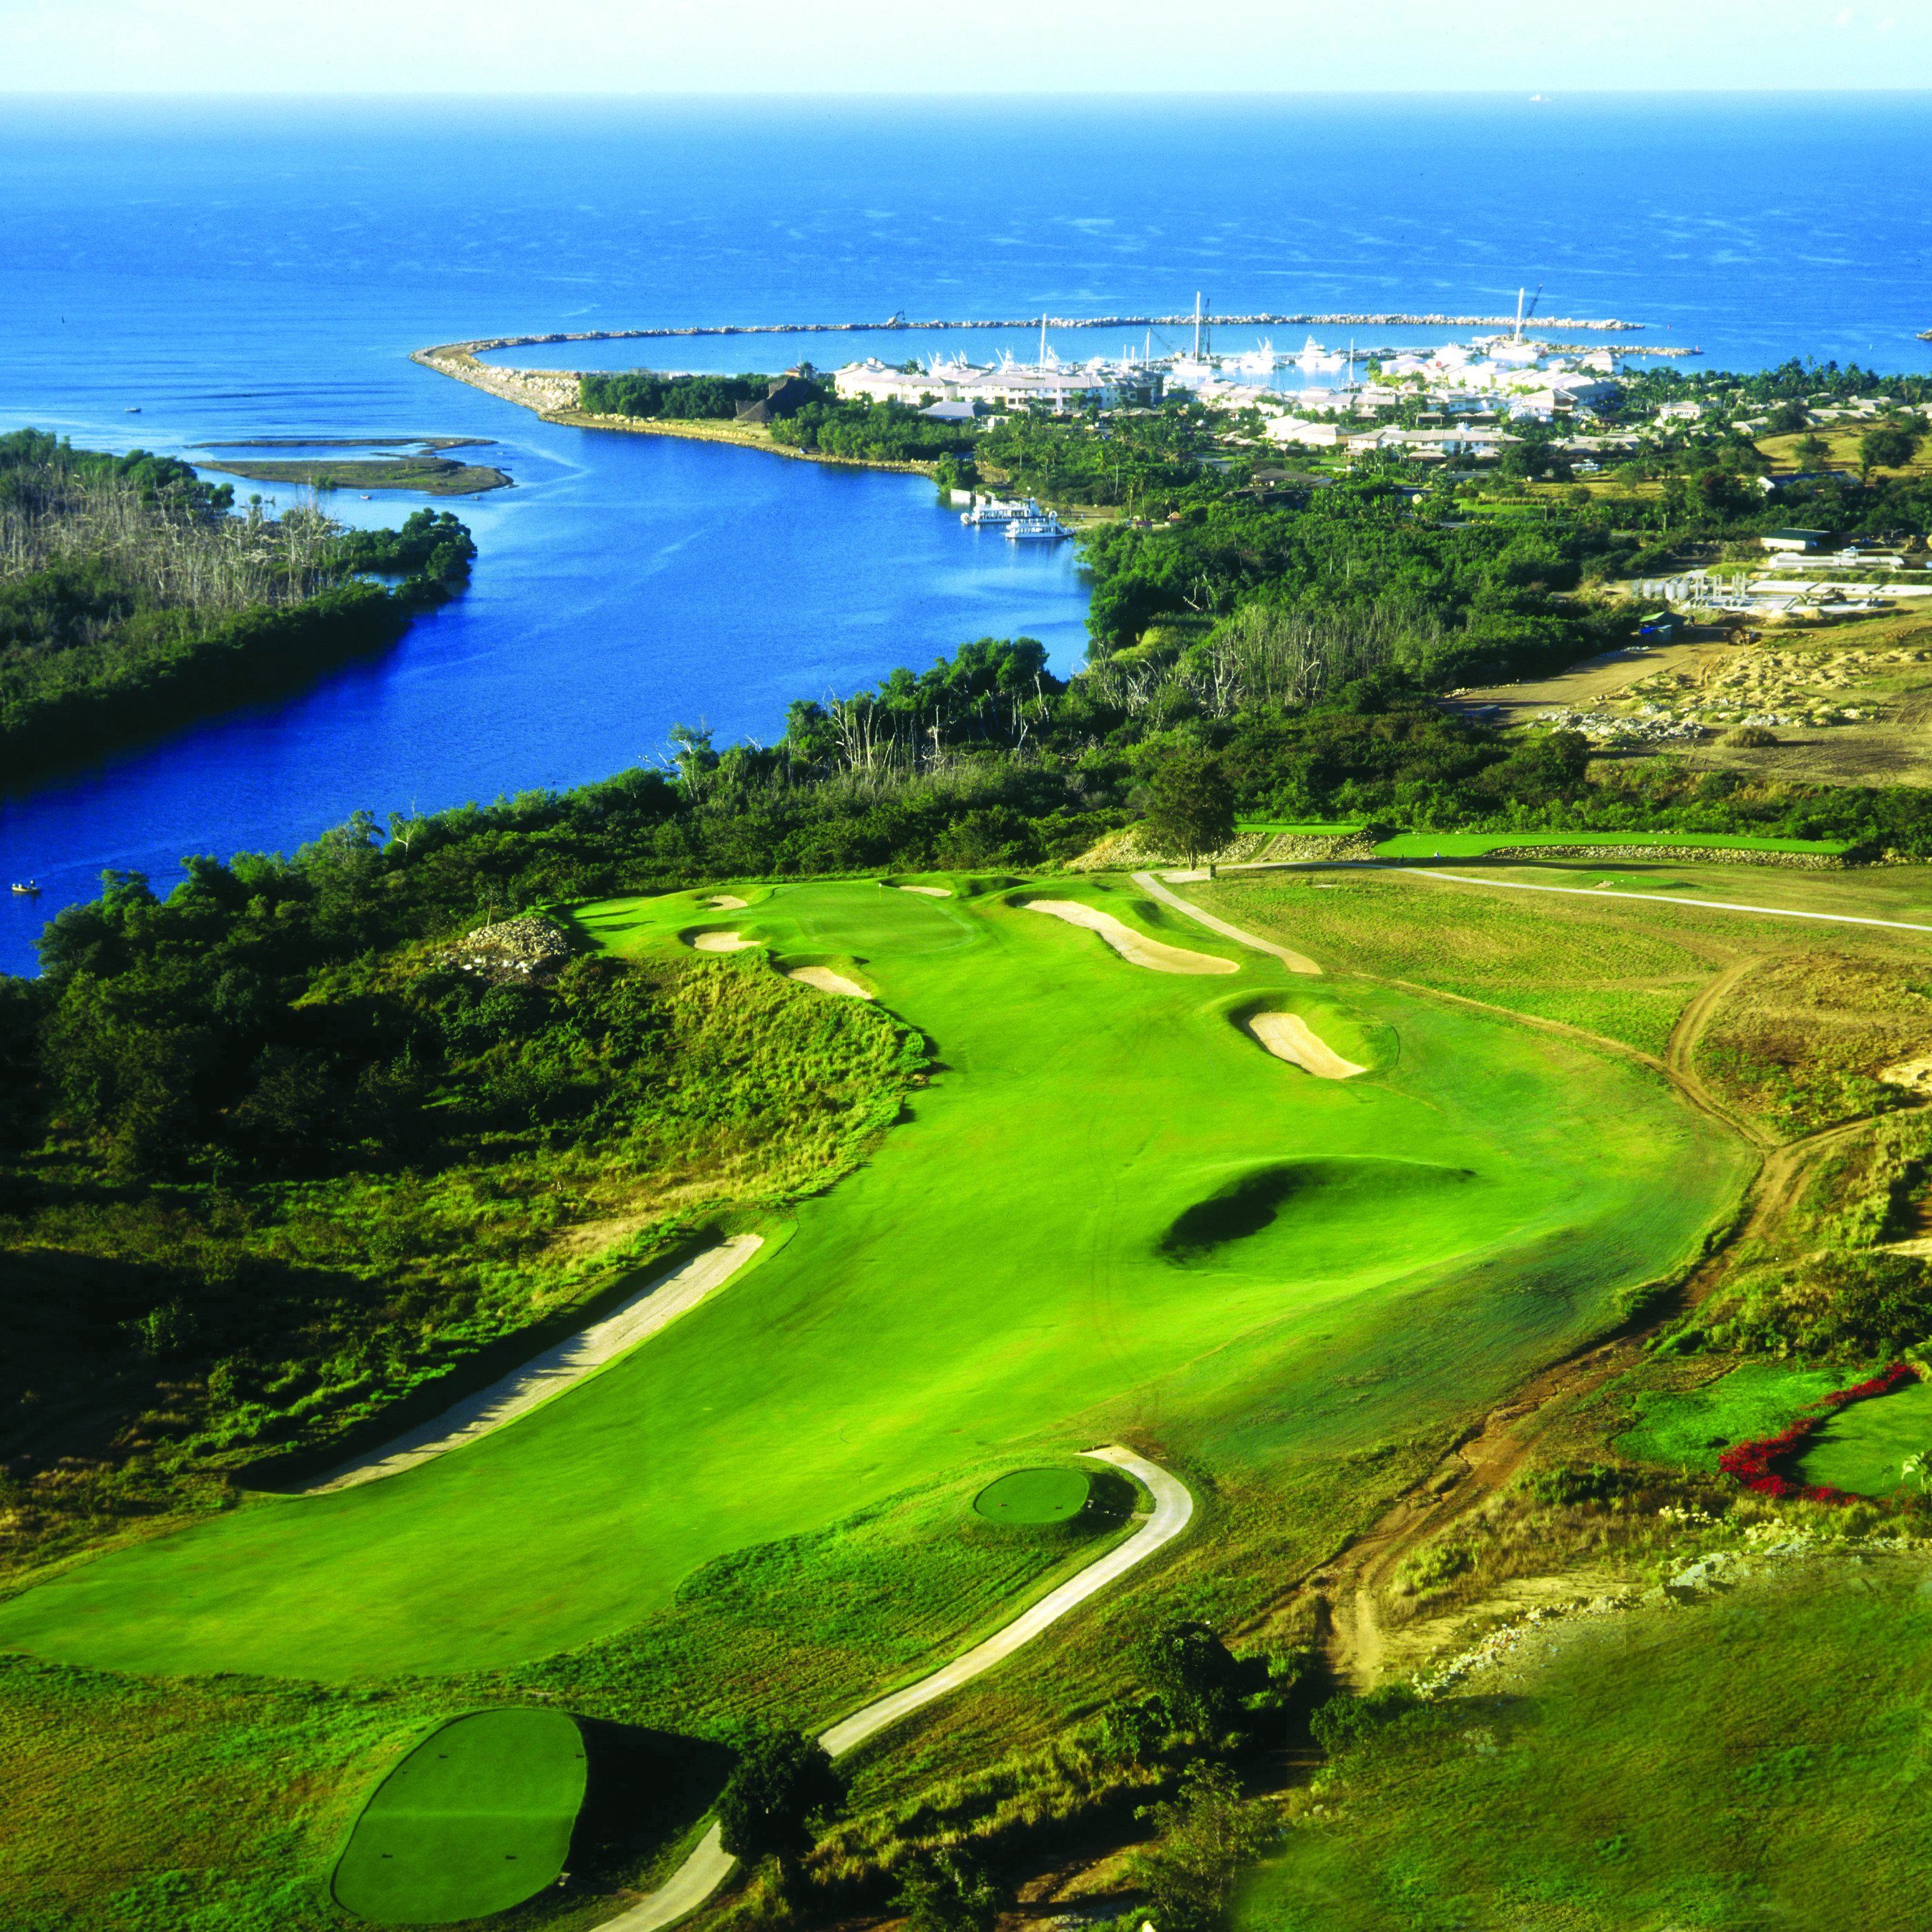 Dominican Republic's Dye Fore golf course in La Romana, home of the 2015 DR Golf Travel Exchange tournament.